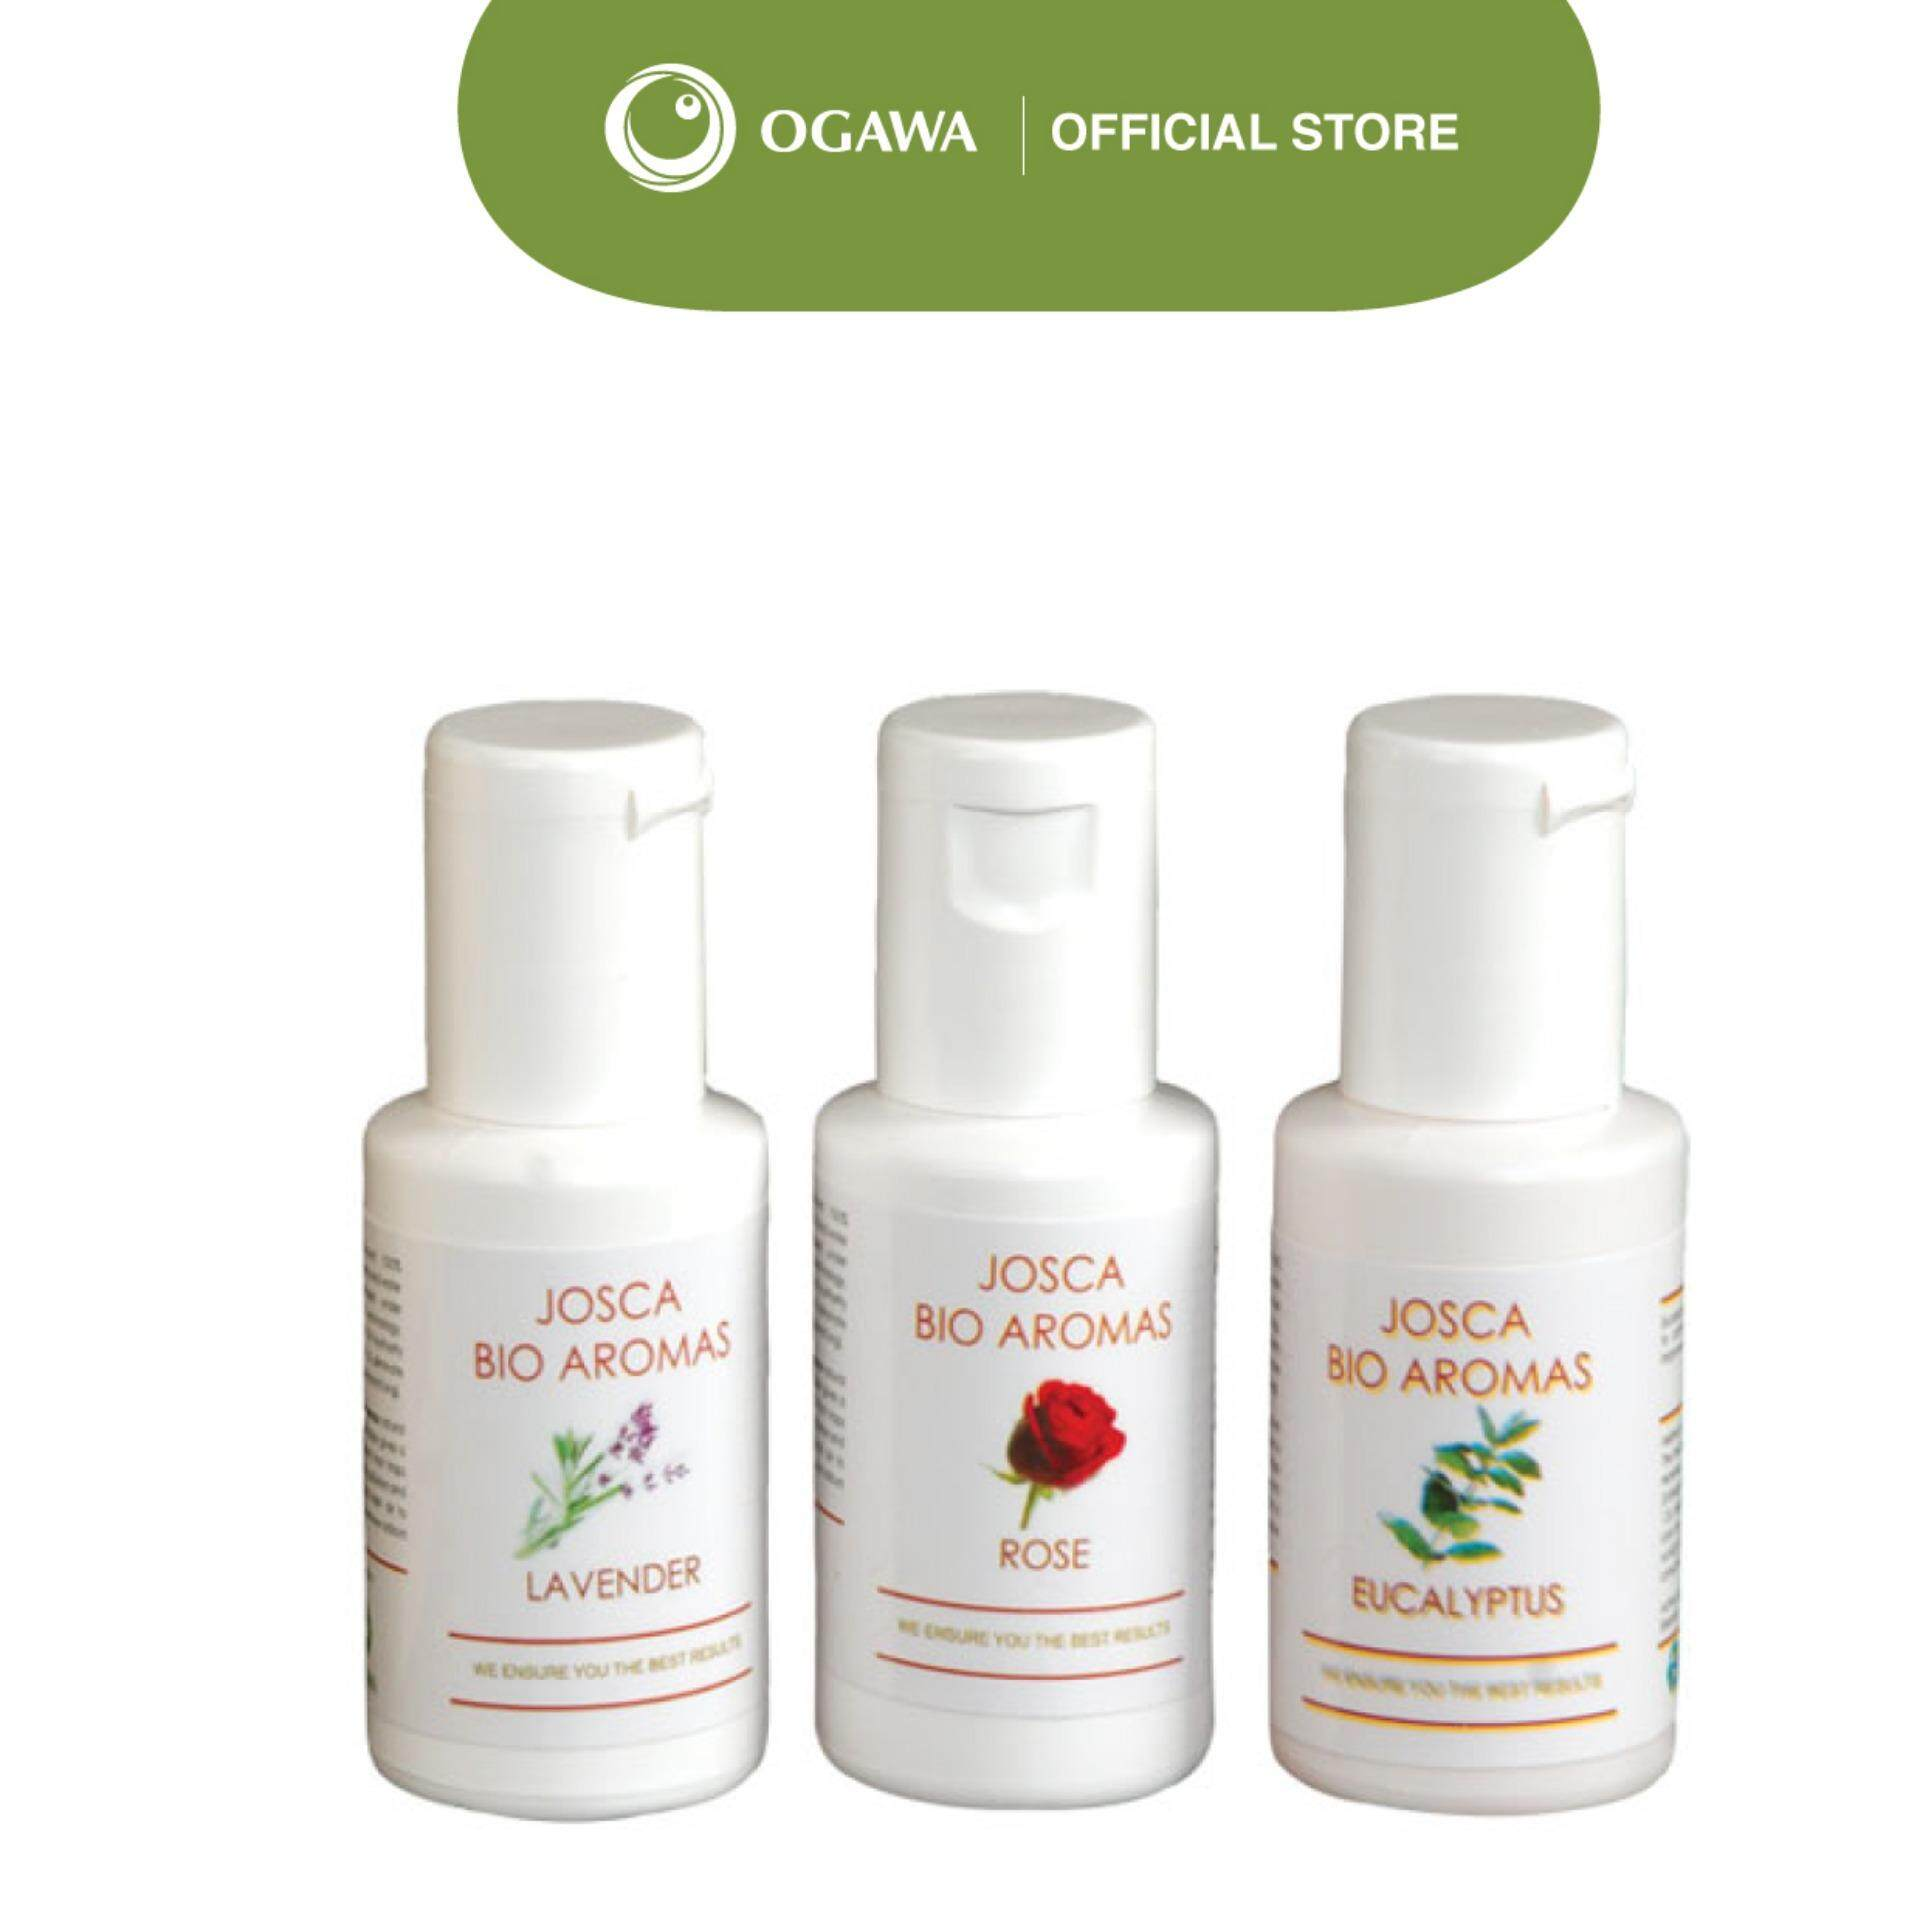 Ogawa Aroma Oil Essence 3 In 1 Starter Pack 30ml By Ogawa.